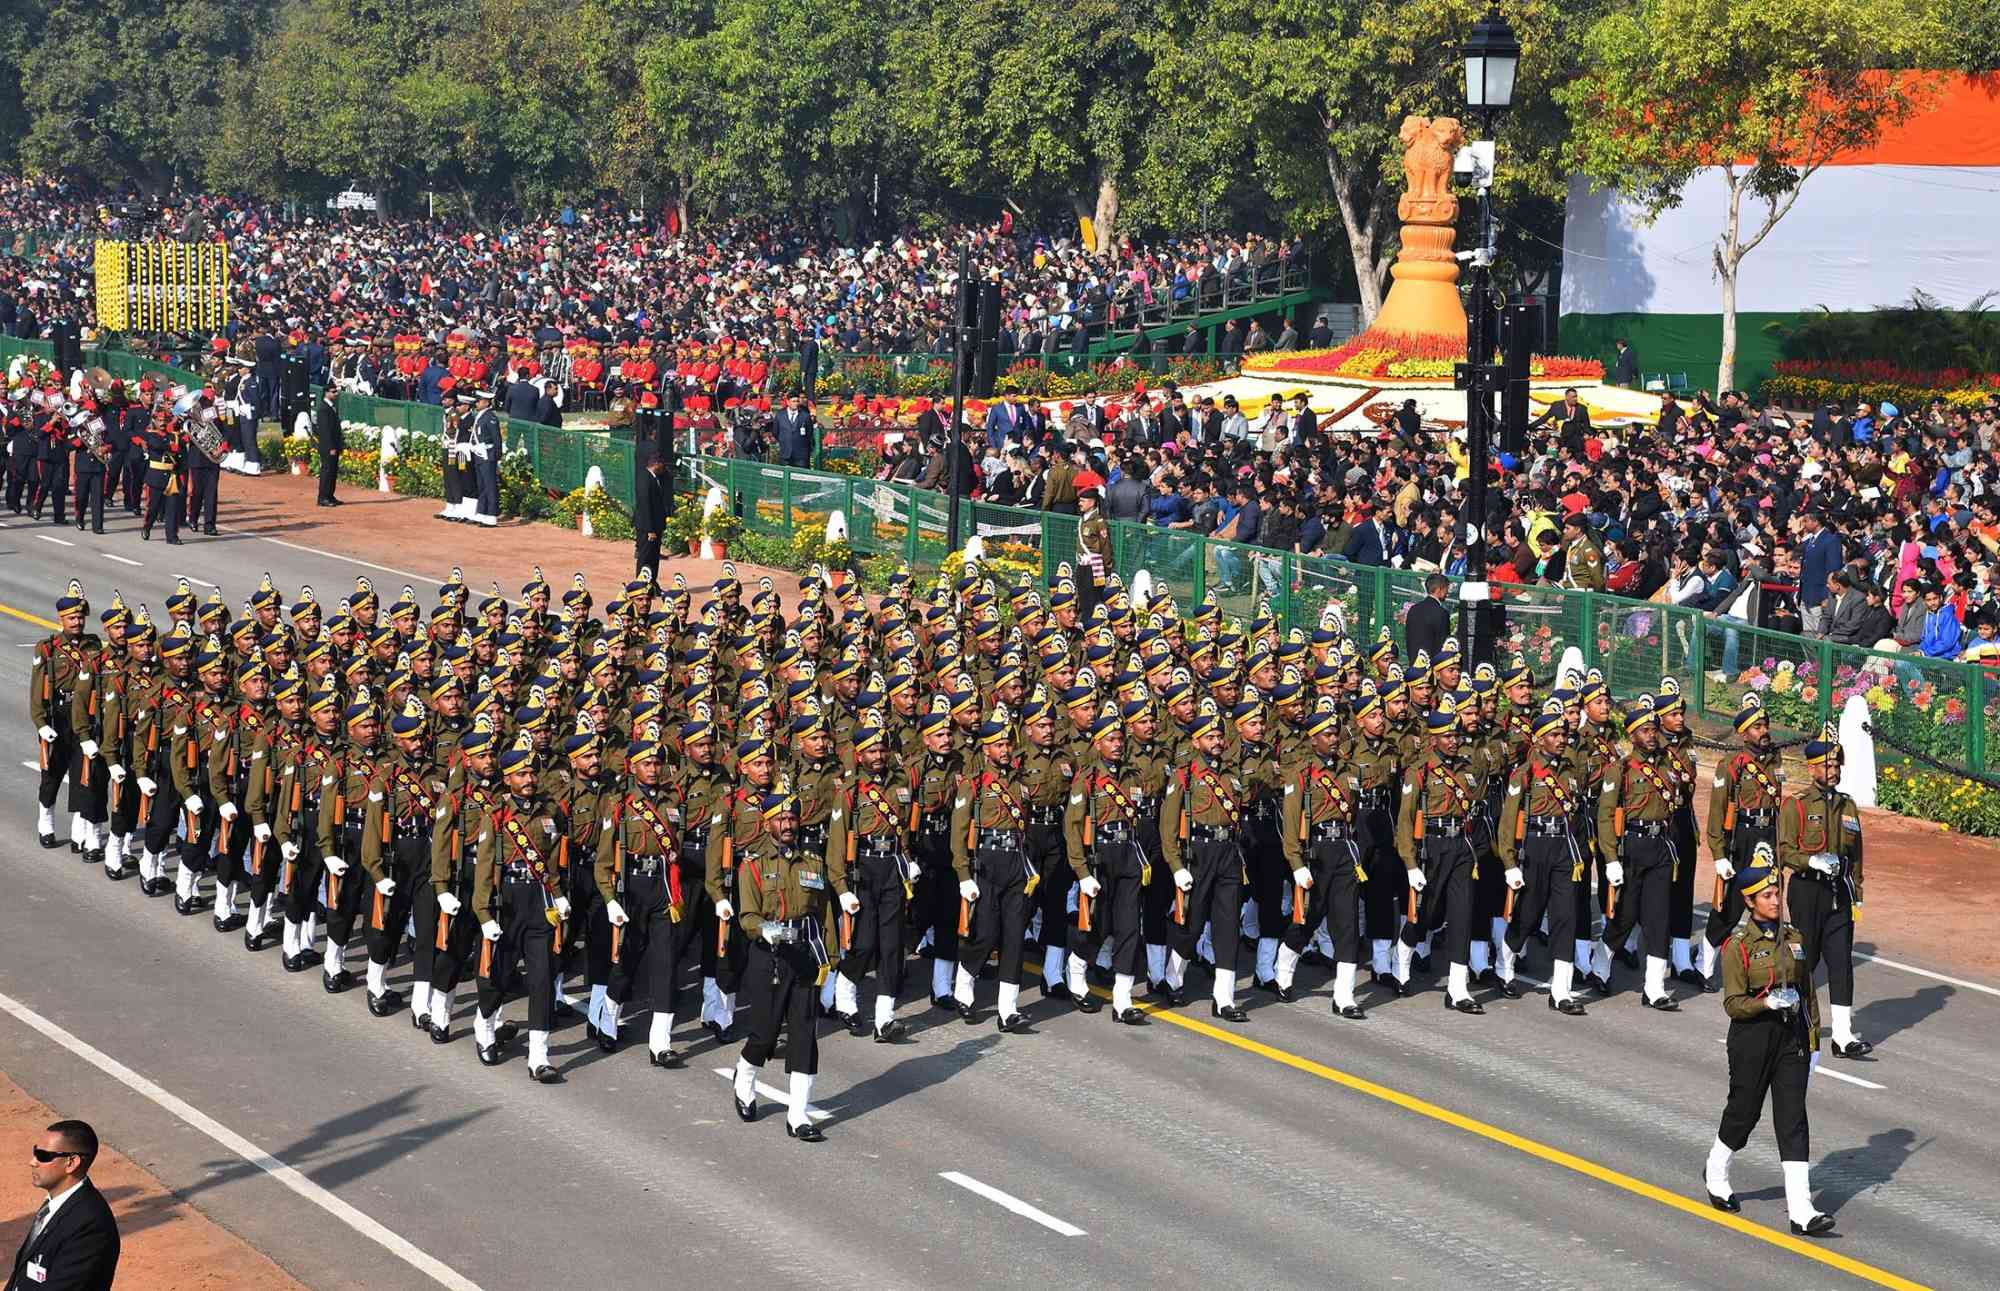 In a first, a woman officer led the Army Services Corps in the parade. (Photo credit: IANS)